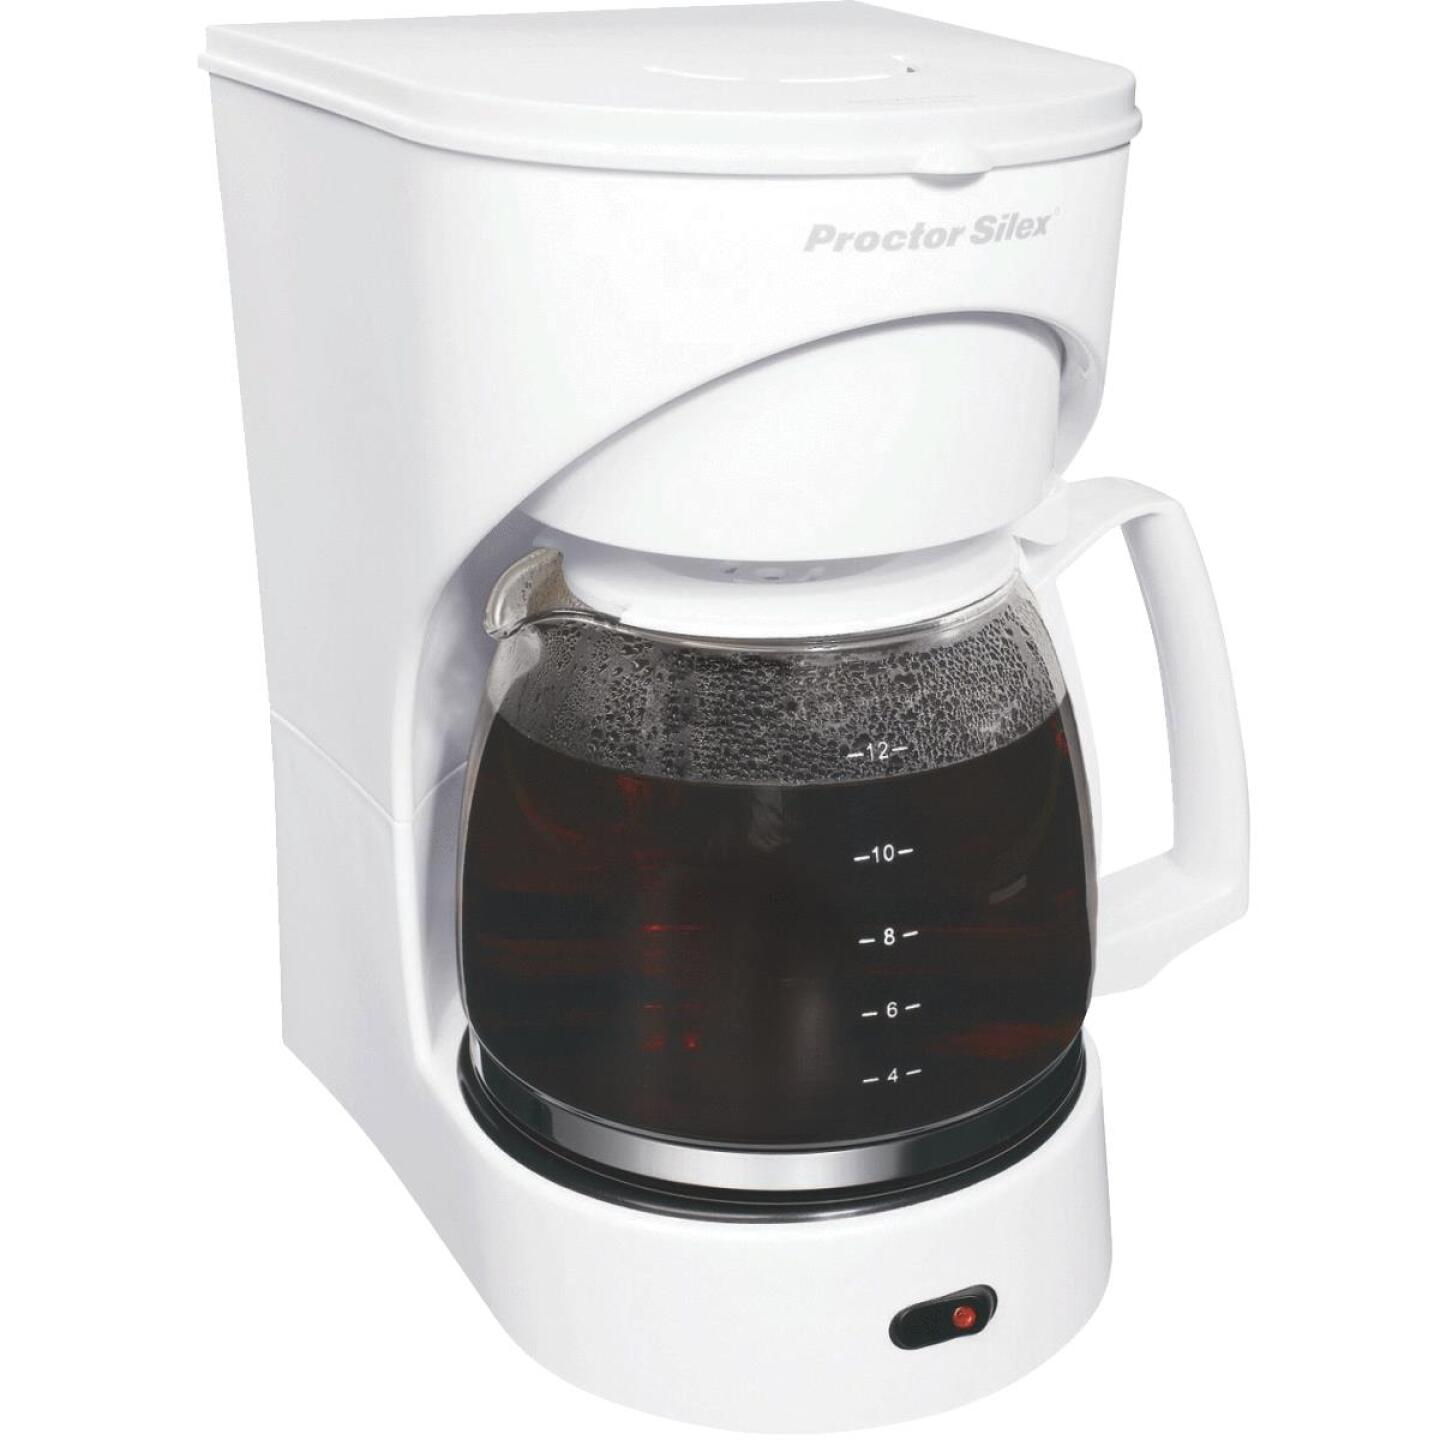 Proctor-Silex 12 Cup White Coffee Maker Image 4